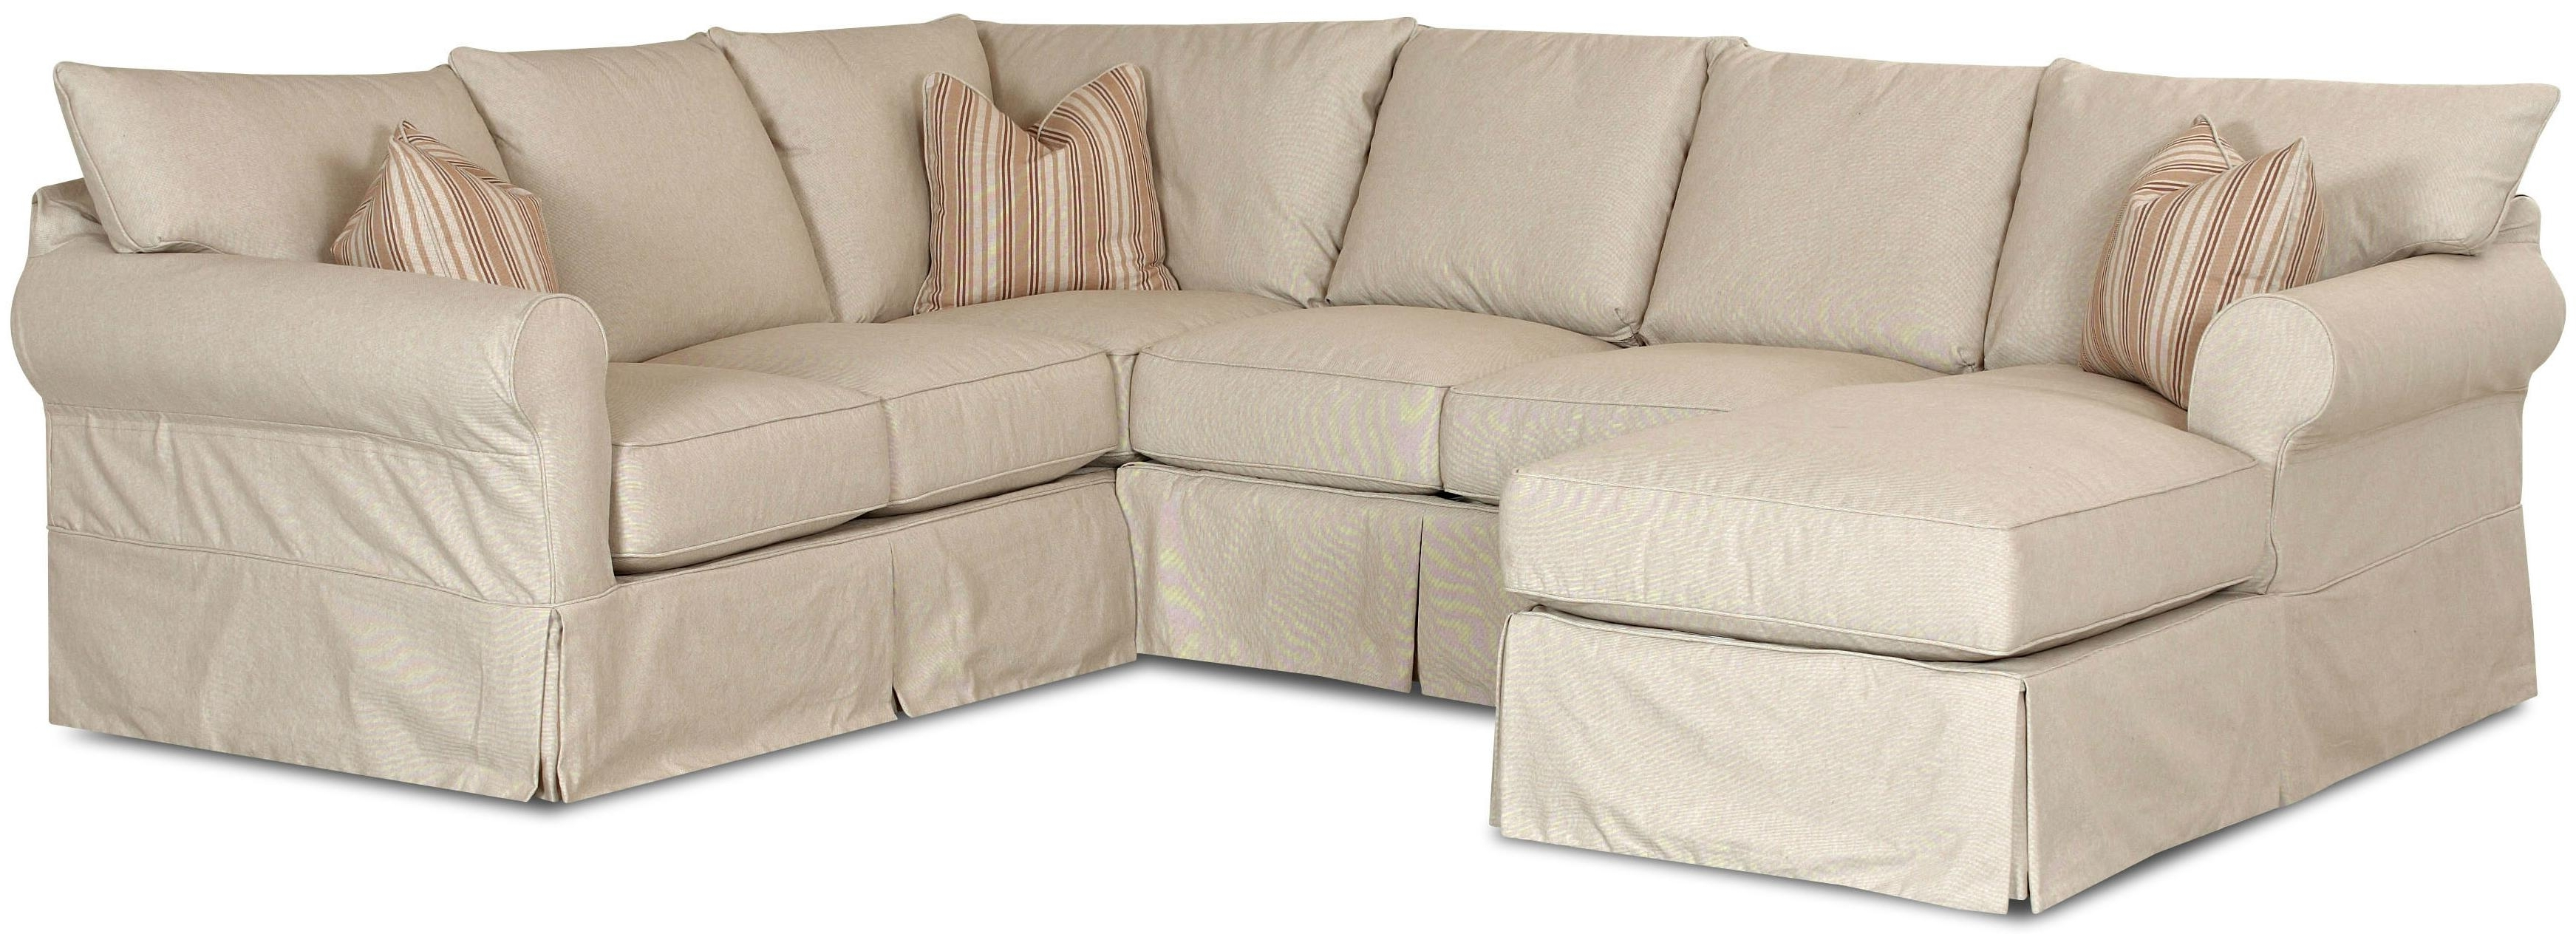 Newest Removable Covers Sectional Sofas With Regard To Sofa Design: Cover Sectional Sofa High Quality Sofa Covers (View 5 of 15)